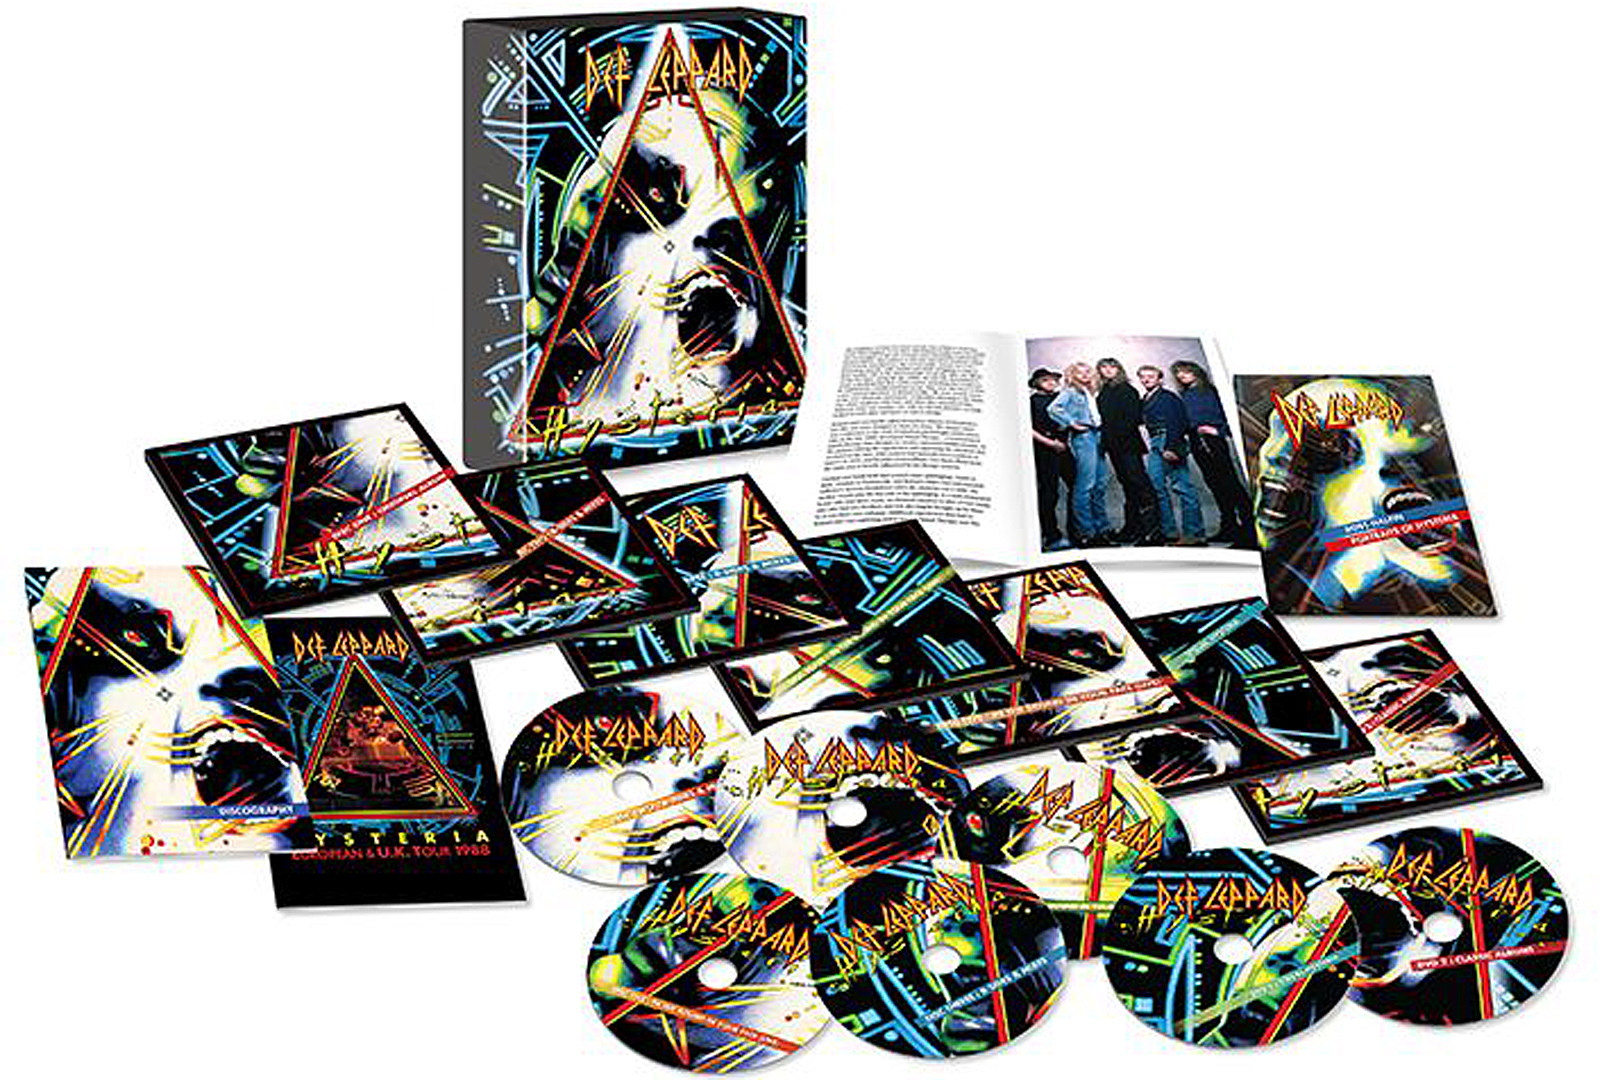 Def Leppard Reveal 30th Anniversary 'Hysteria' Remastered Box Set